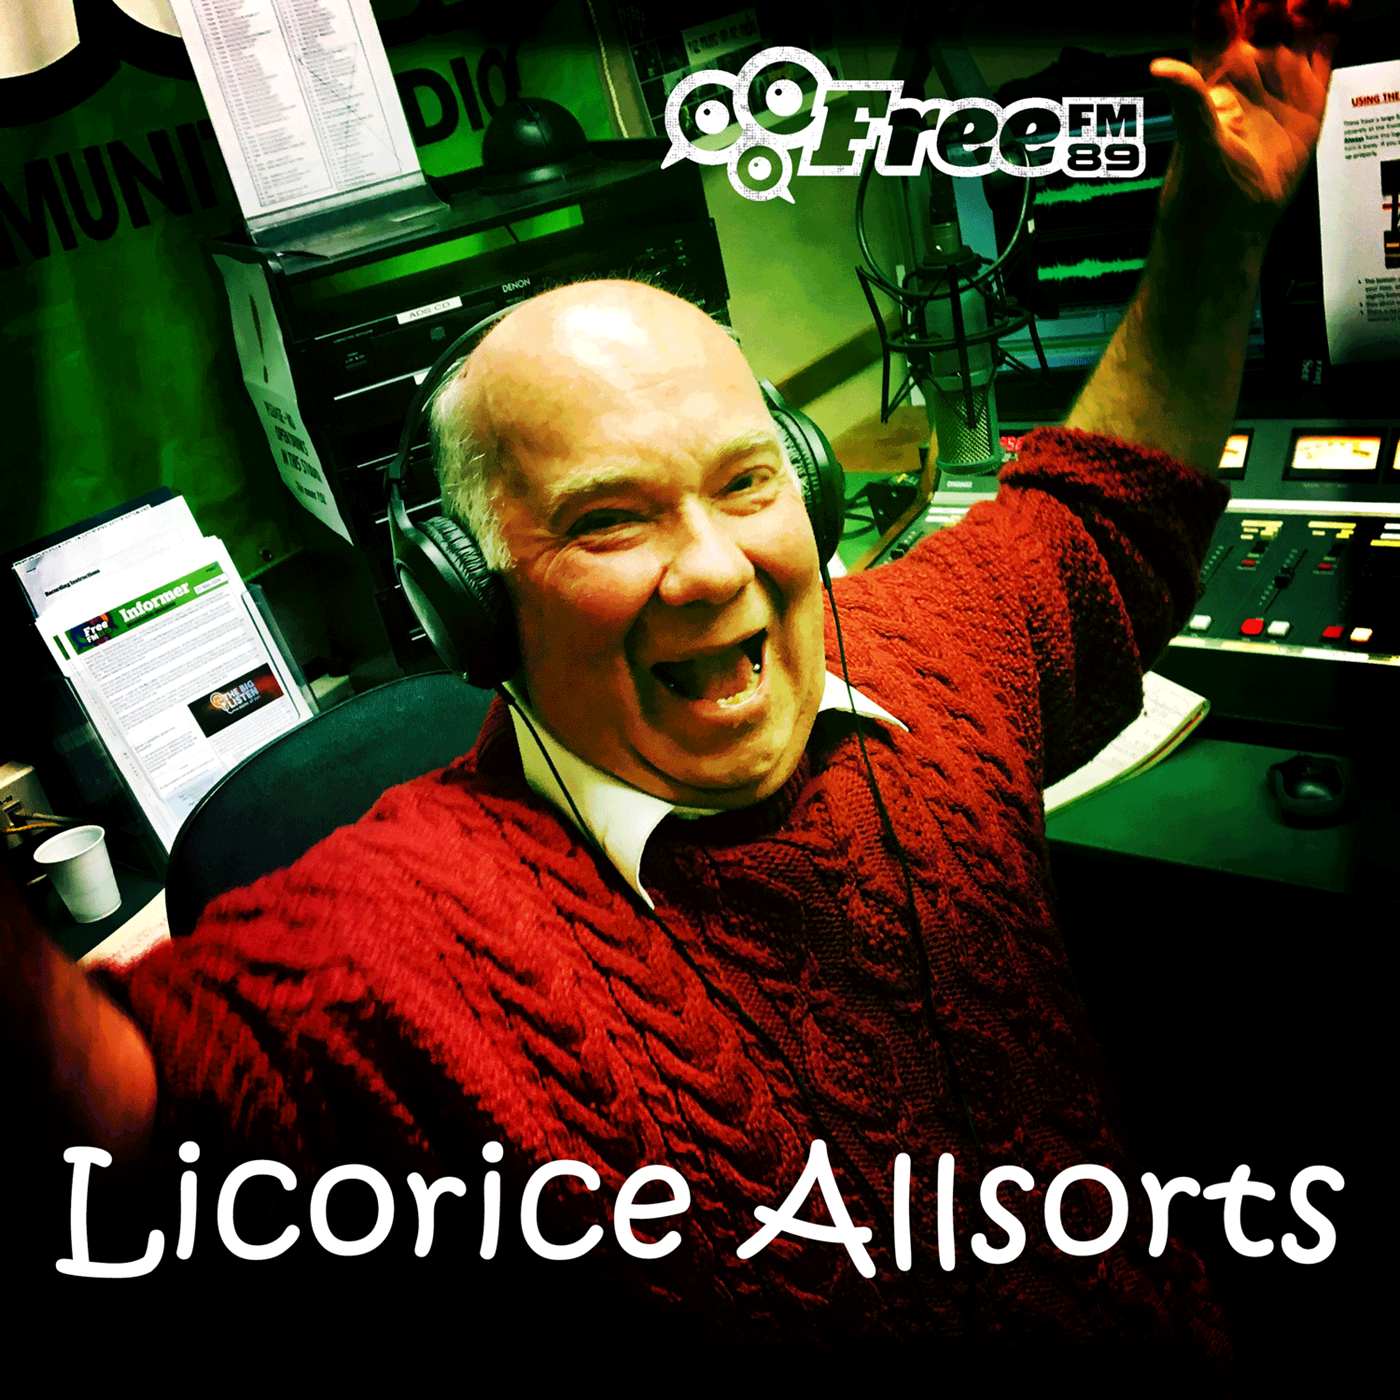 https://cdn.accessradio.org/StationFolder/freefm89/Images/LicoriceAllsorts.png